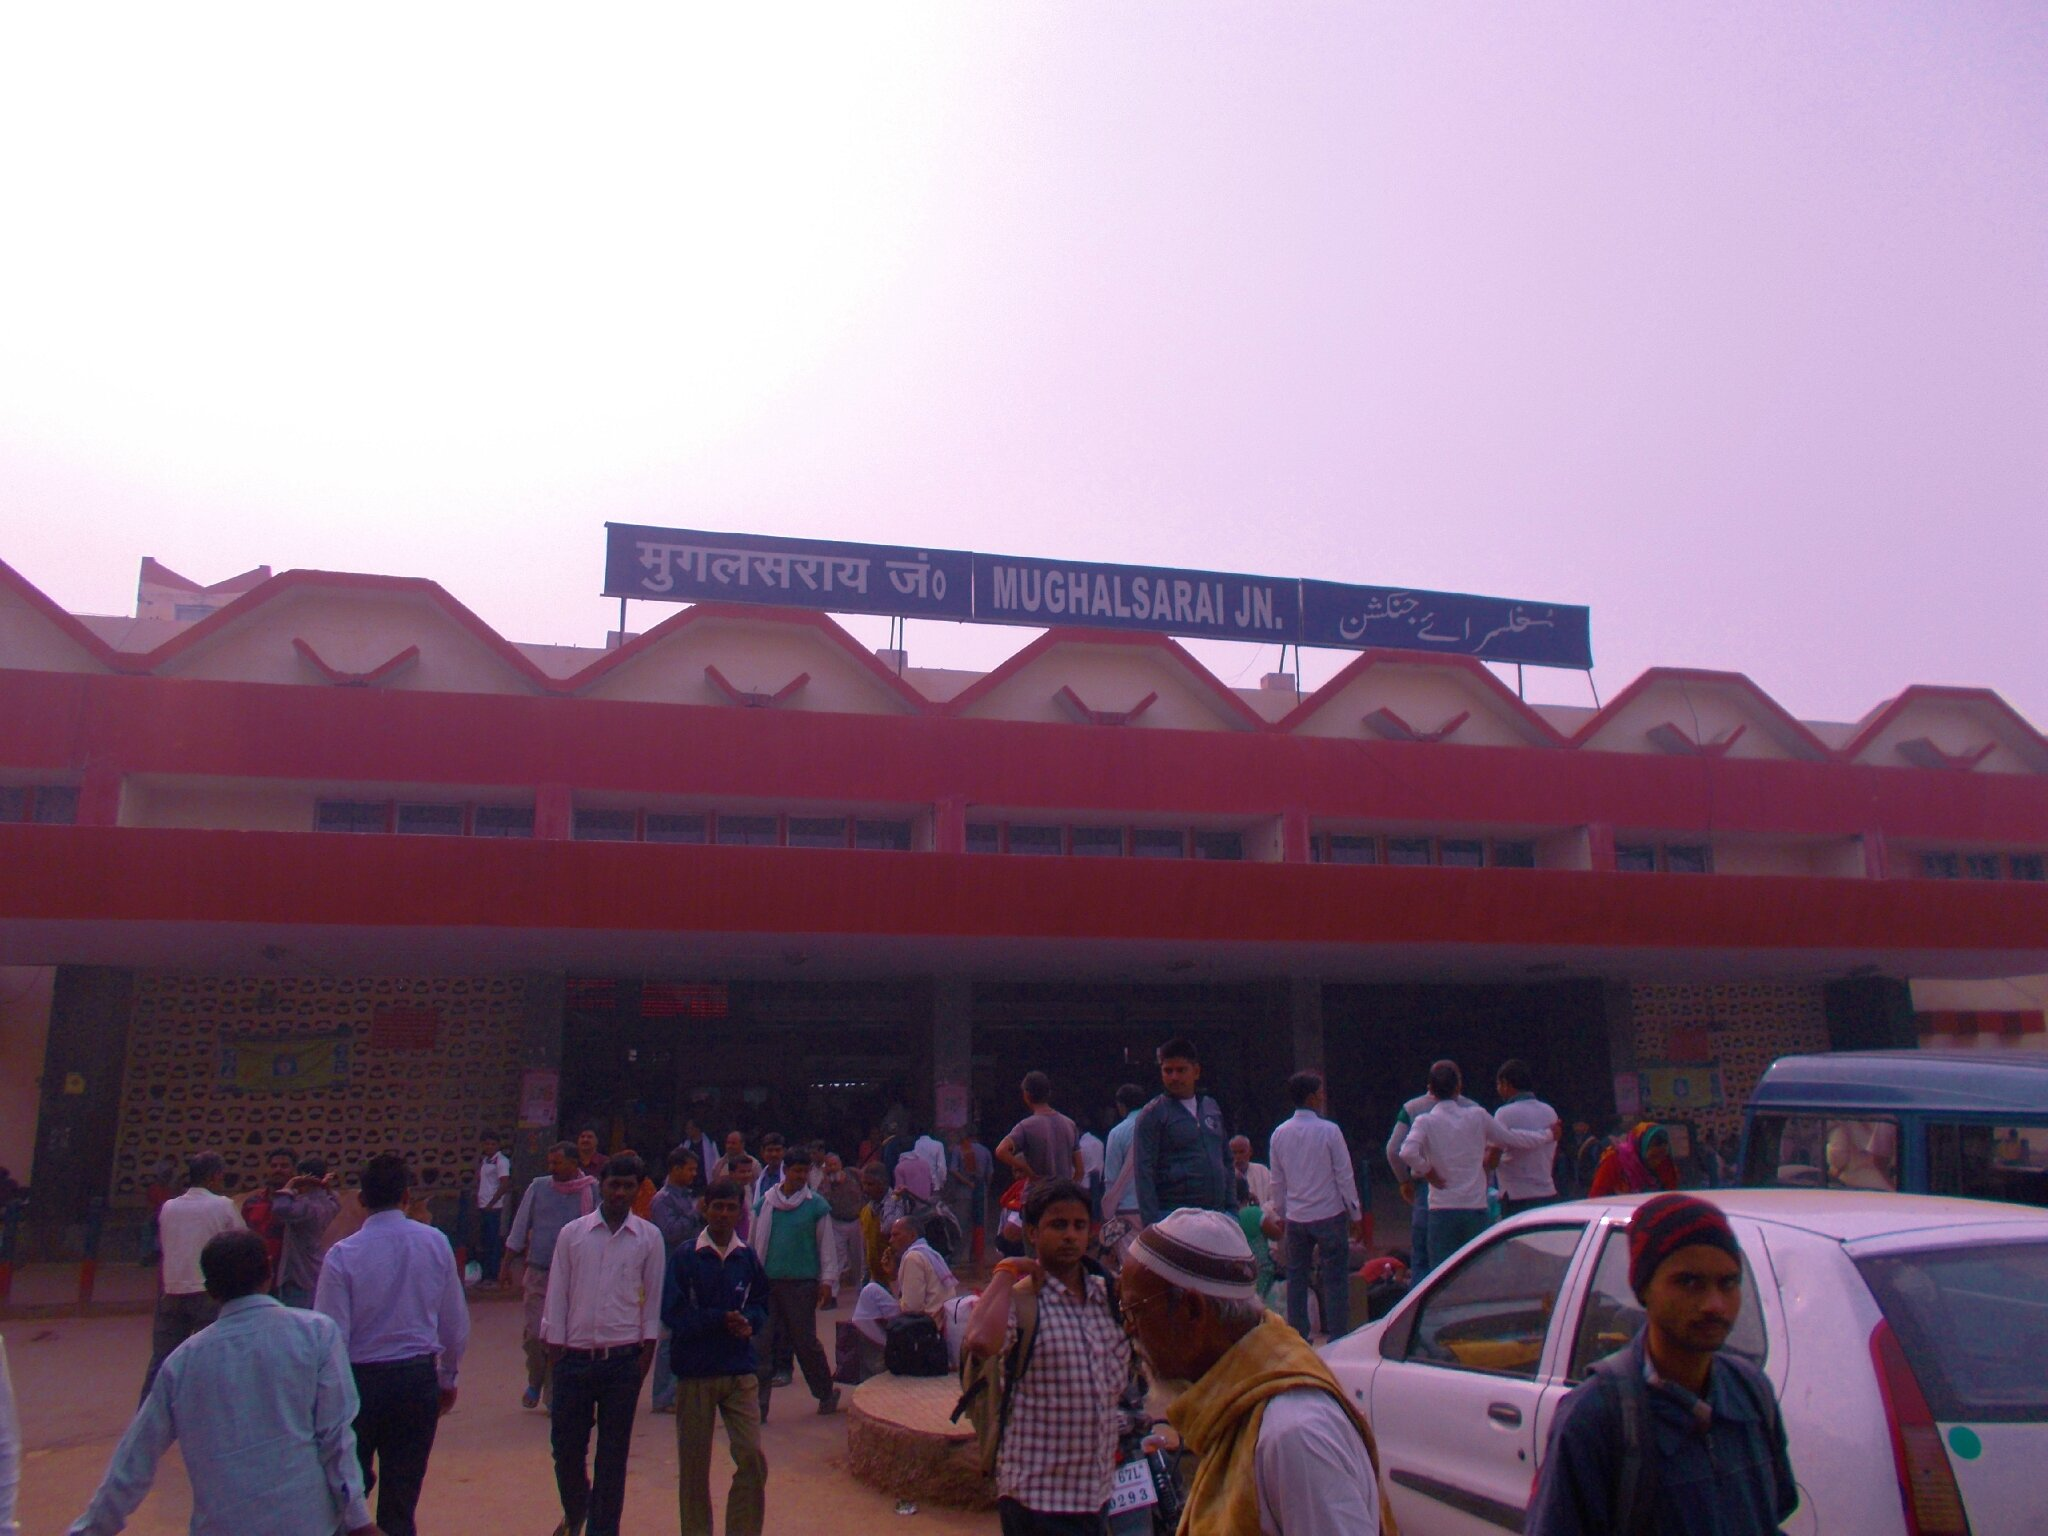 Mughalsaraï Junction (Inde)